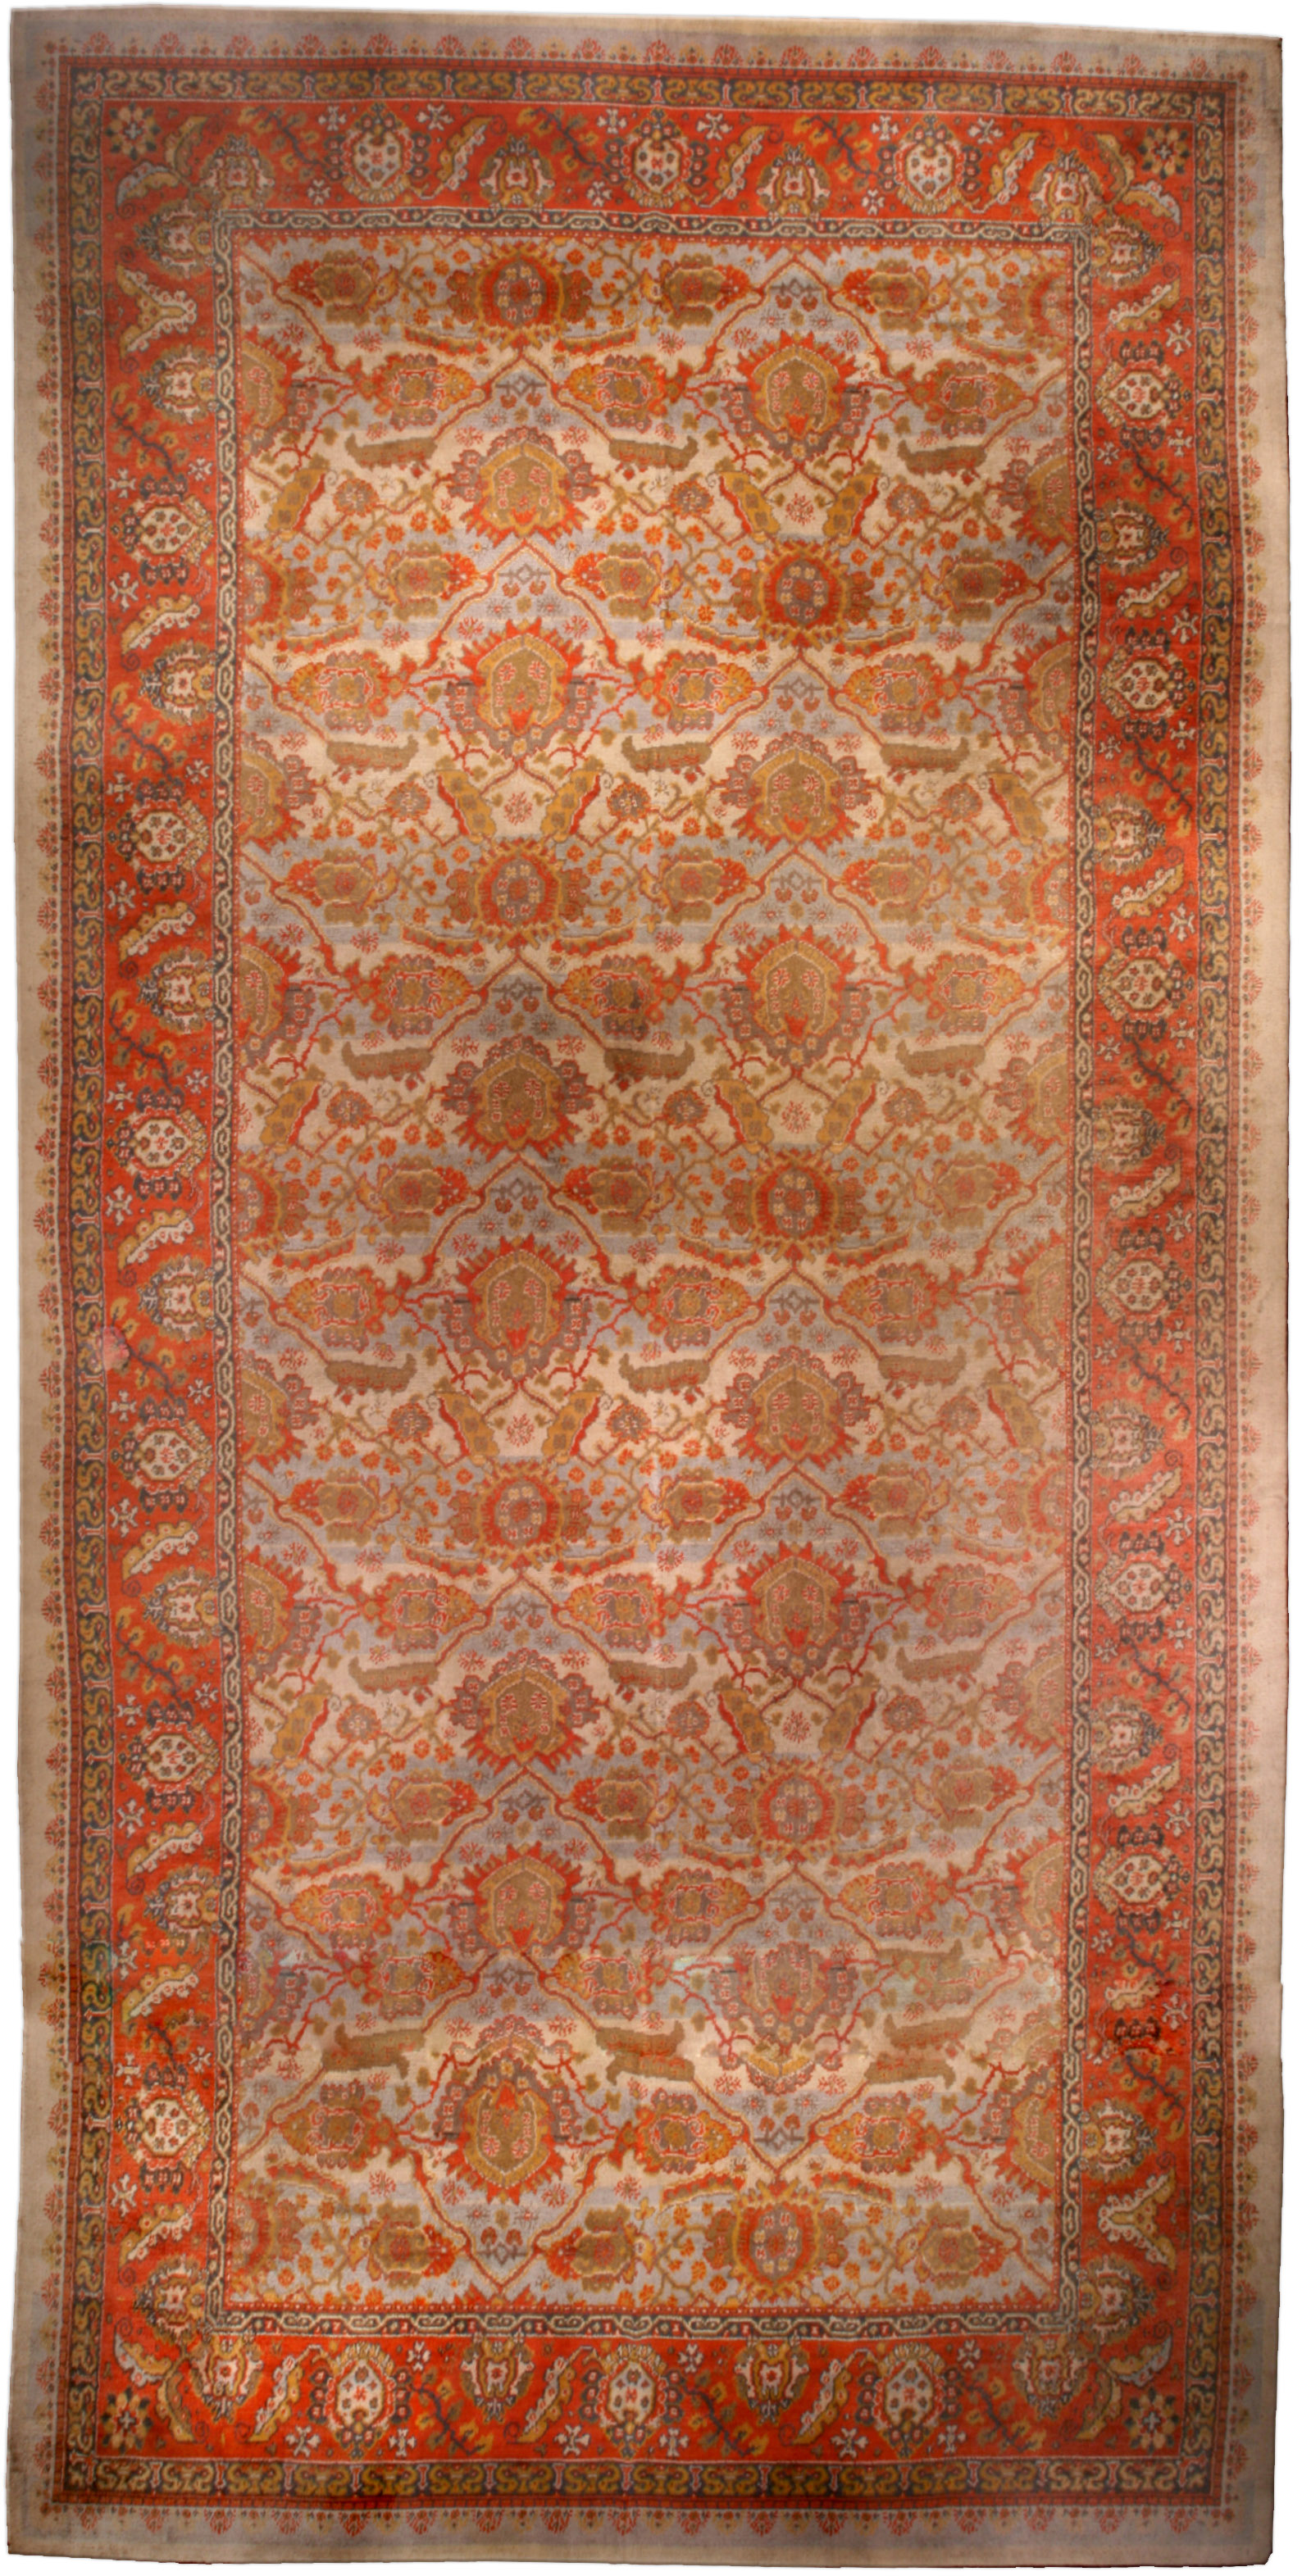 Antique English Axminster Carpet Bb1162 By Dlb